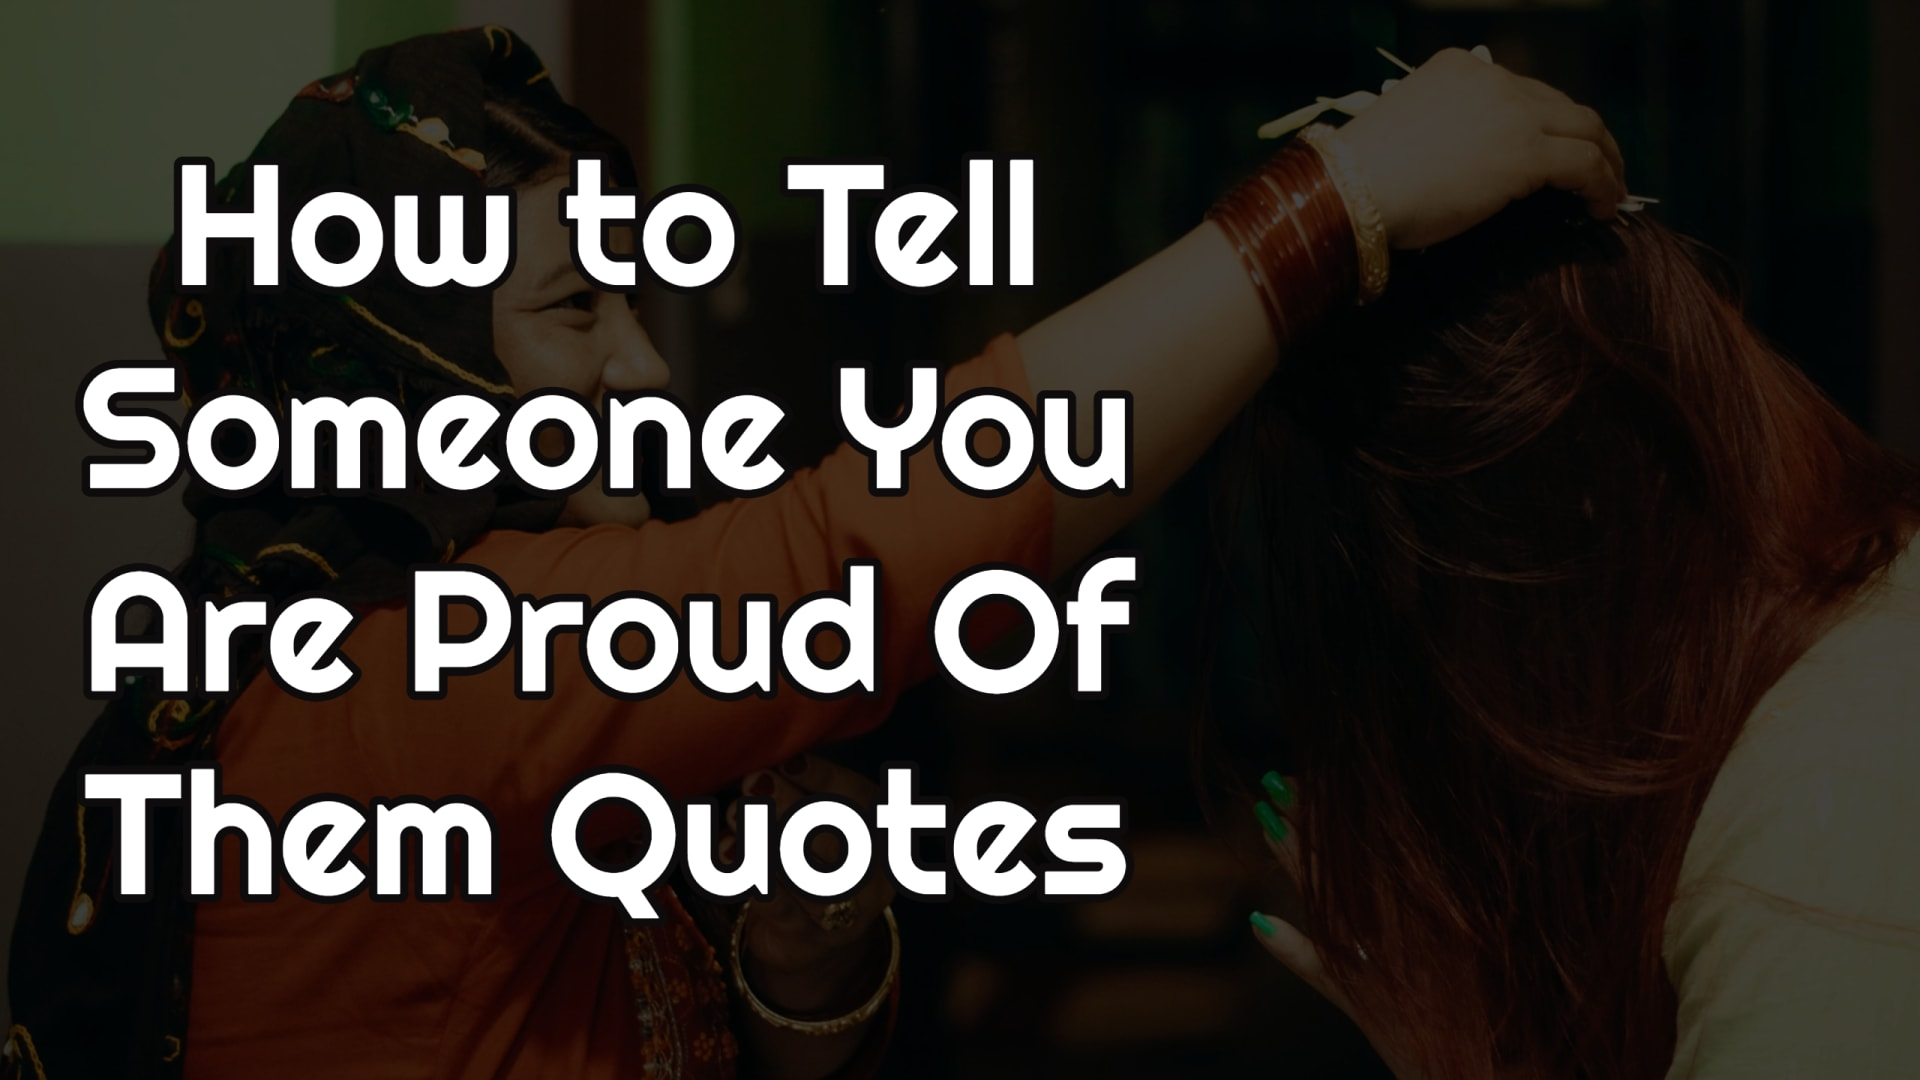 How to Tell Someone You Are Proud Of Them Quotes